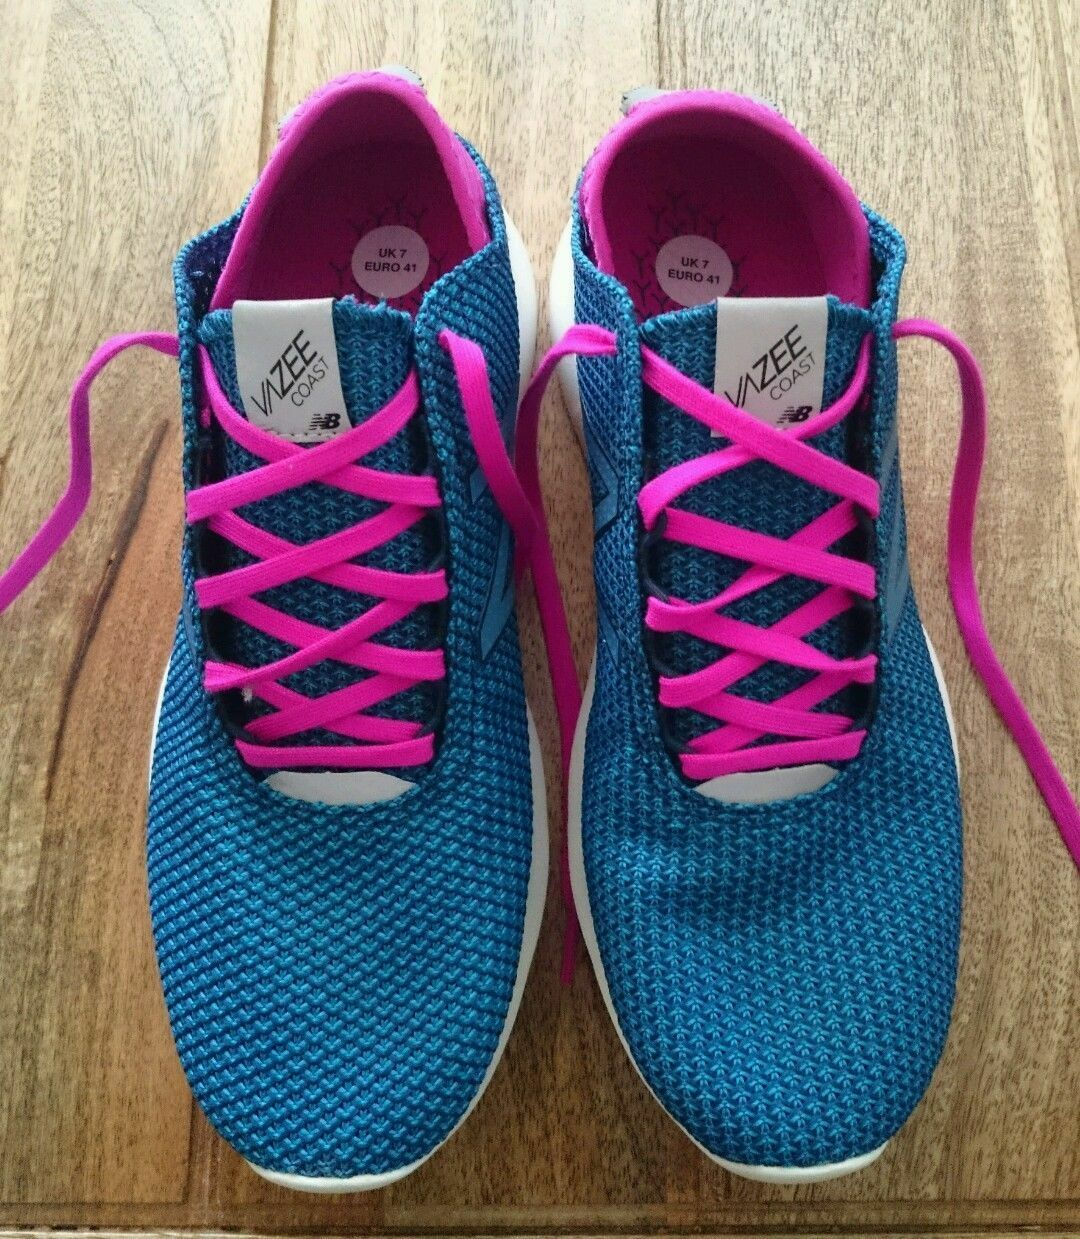 Zapatos promocionales para hombres y mujeres NEW BALANCE VAZEE COAST V2 GREEN PINK TURQUOISE SNEAKERS TRAINERS 7 40.5 9